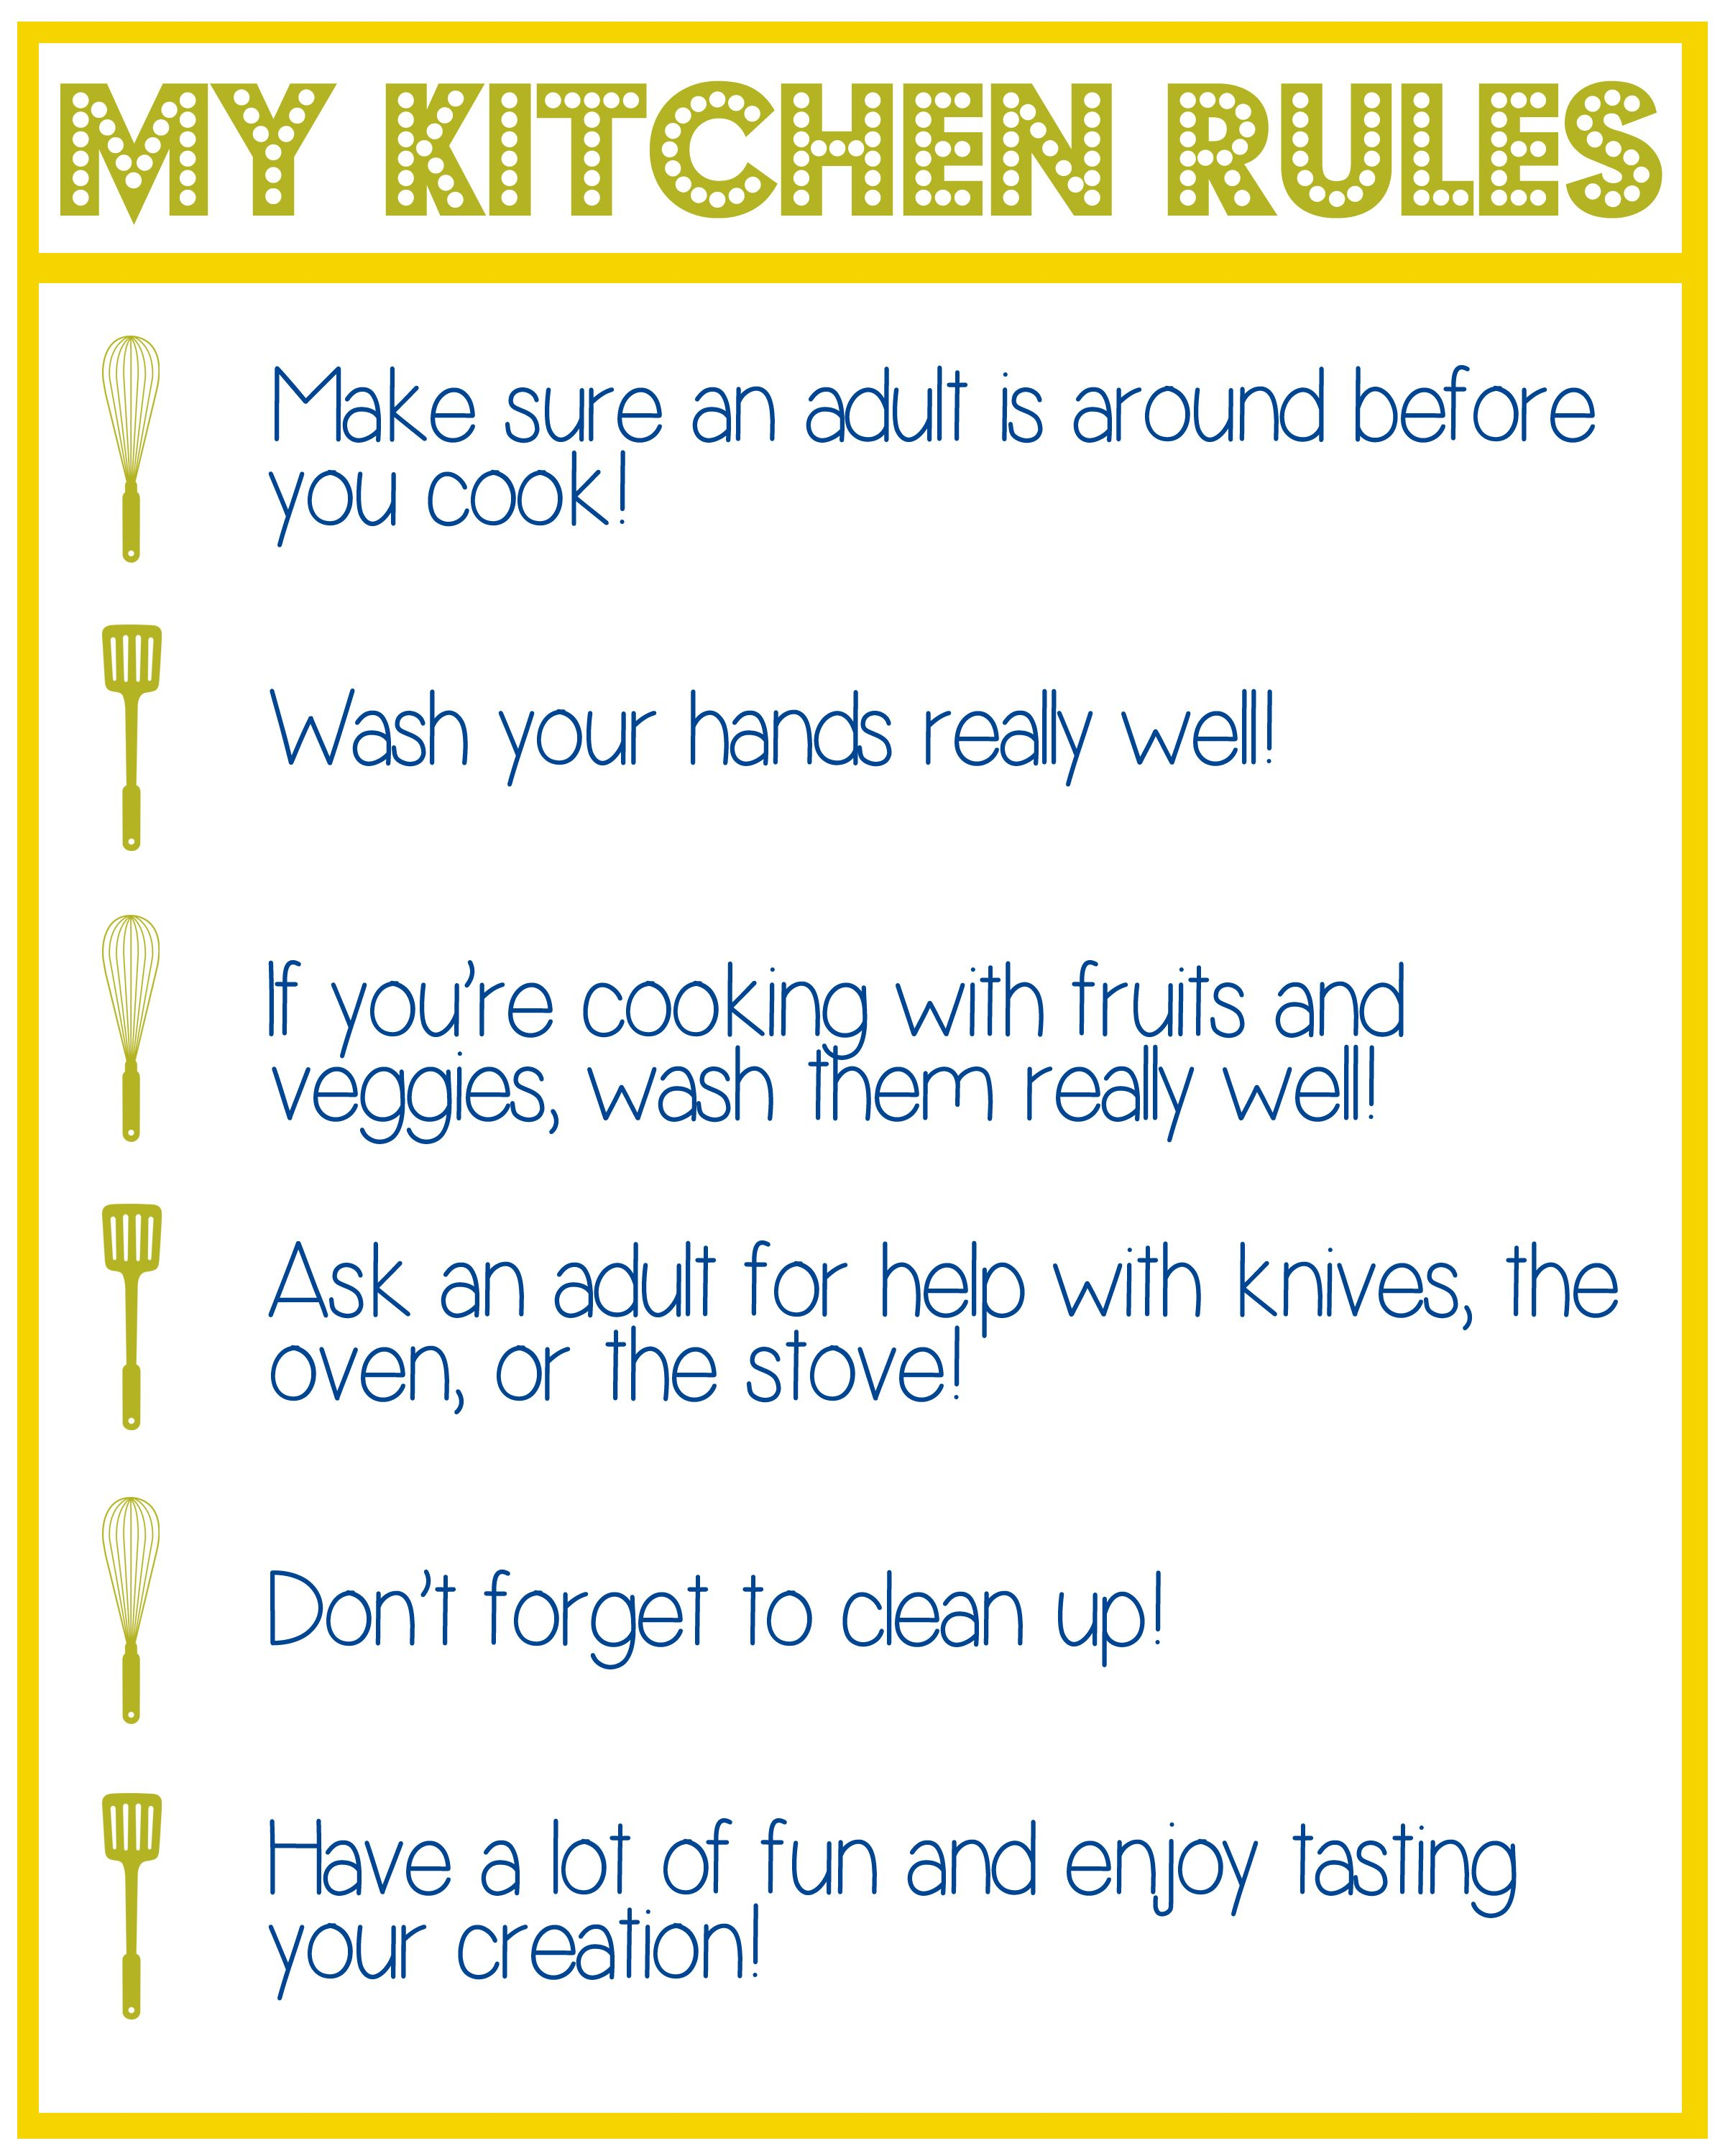 Kids in the kitchen cooking delicious healthy recipes